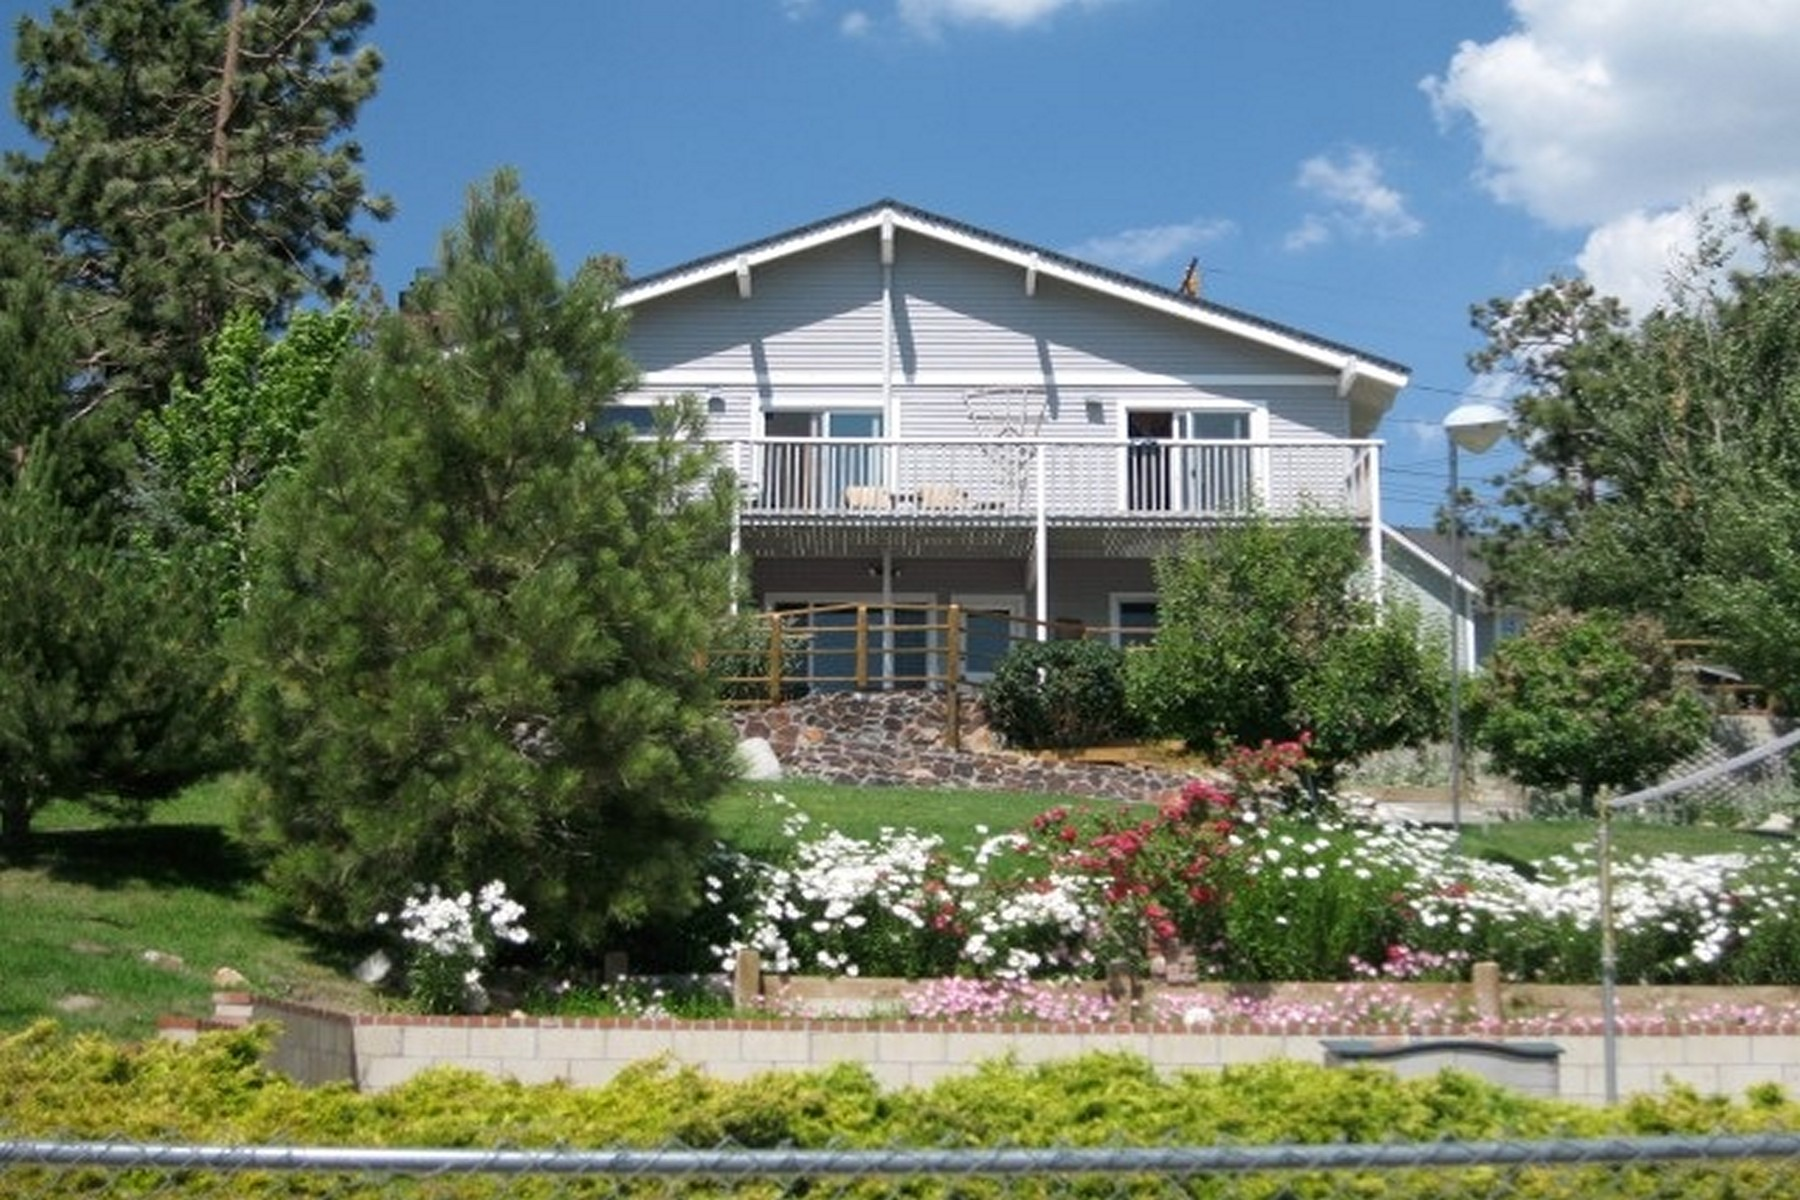 Single Family Home for Sale at 39599 Lake Drive Big Bear Lake, California 92315 United States